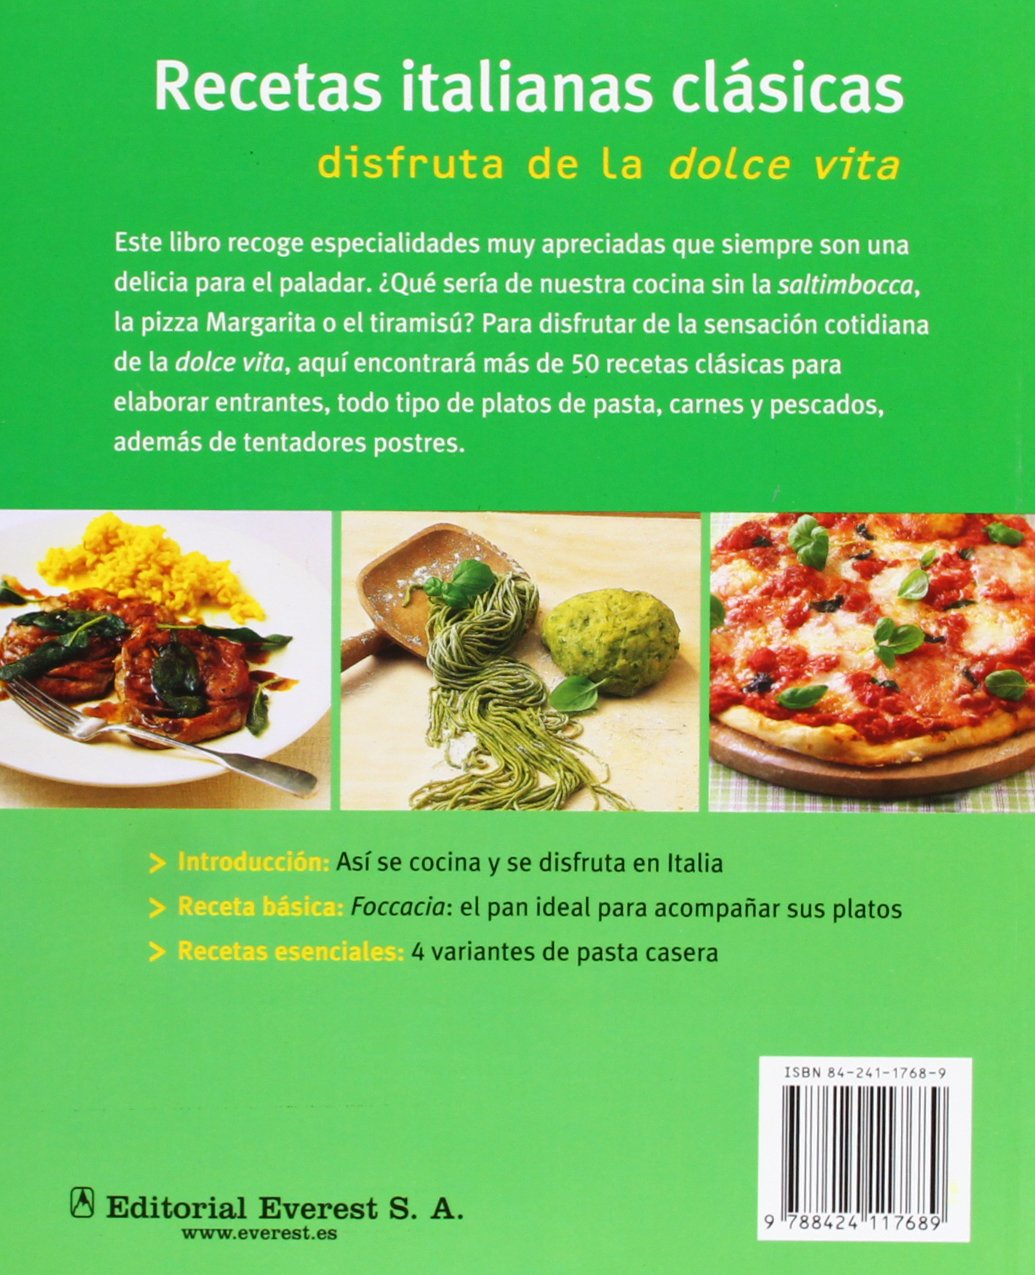 Recetas Italianas Clasicas (Spanish Edition) by Everest De Ediciones Y distribucion